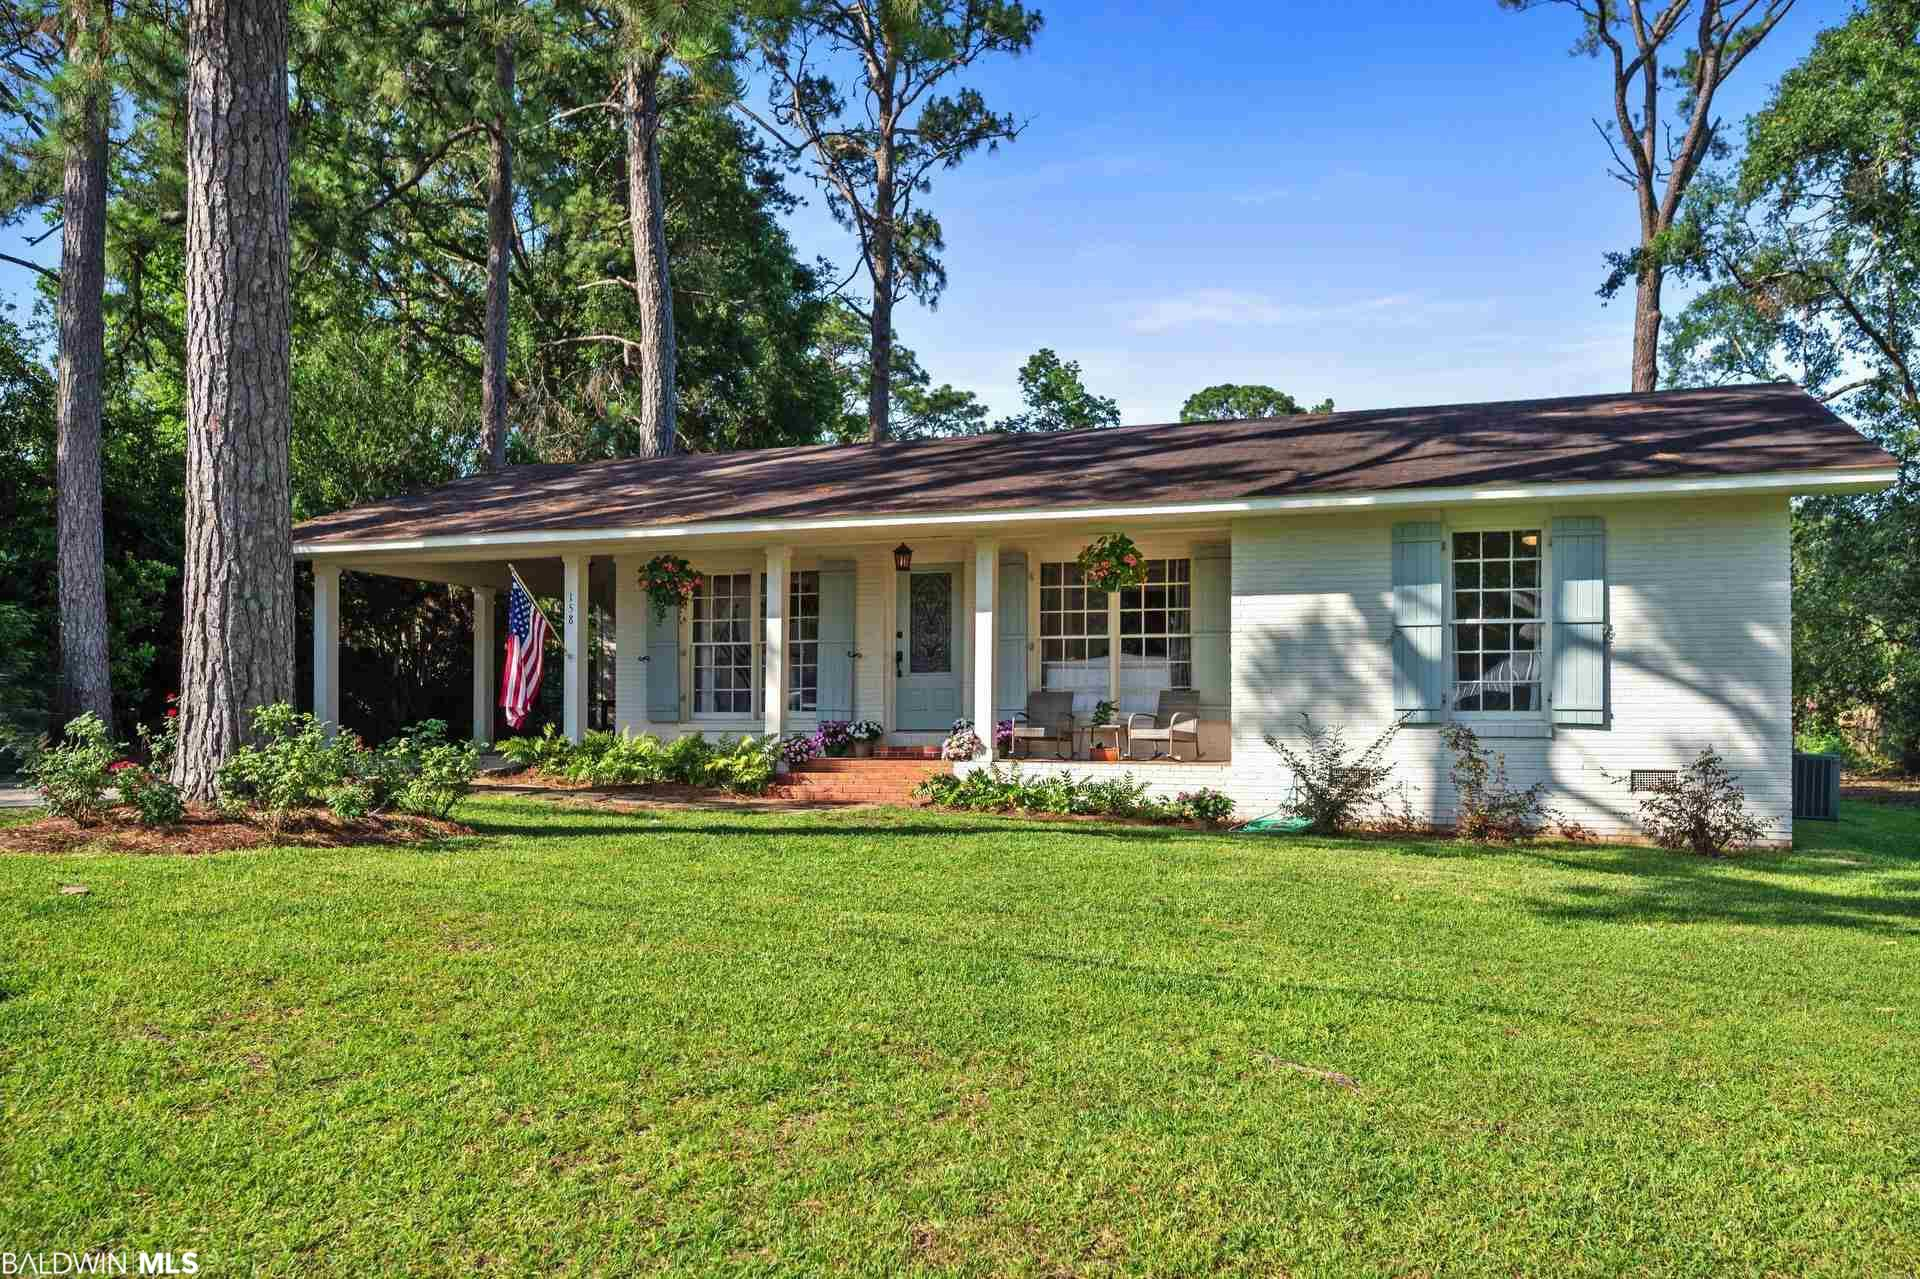 Enjoy the most beautiful sunsets on Mobile Bay just blocks away from this charming cottage.  Walking distance to the town center of historic Fairhope.  This 3 bedroom, 2 bath home has all the character.  Newly updated kitchen with granite counter tops and gas stove.  New paint throughout.   Seller is a licensed real estate agent in Alabama.